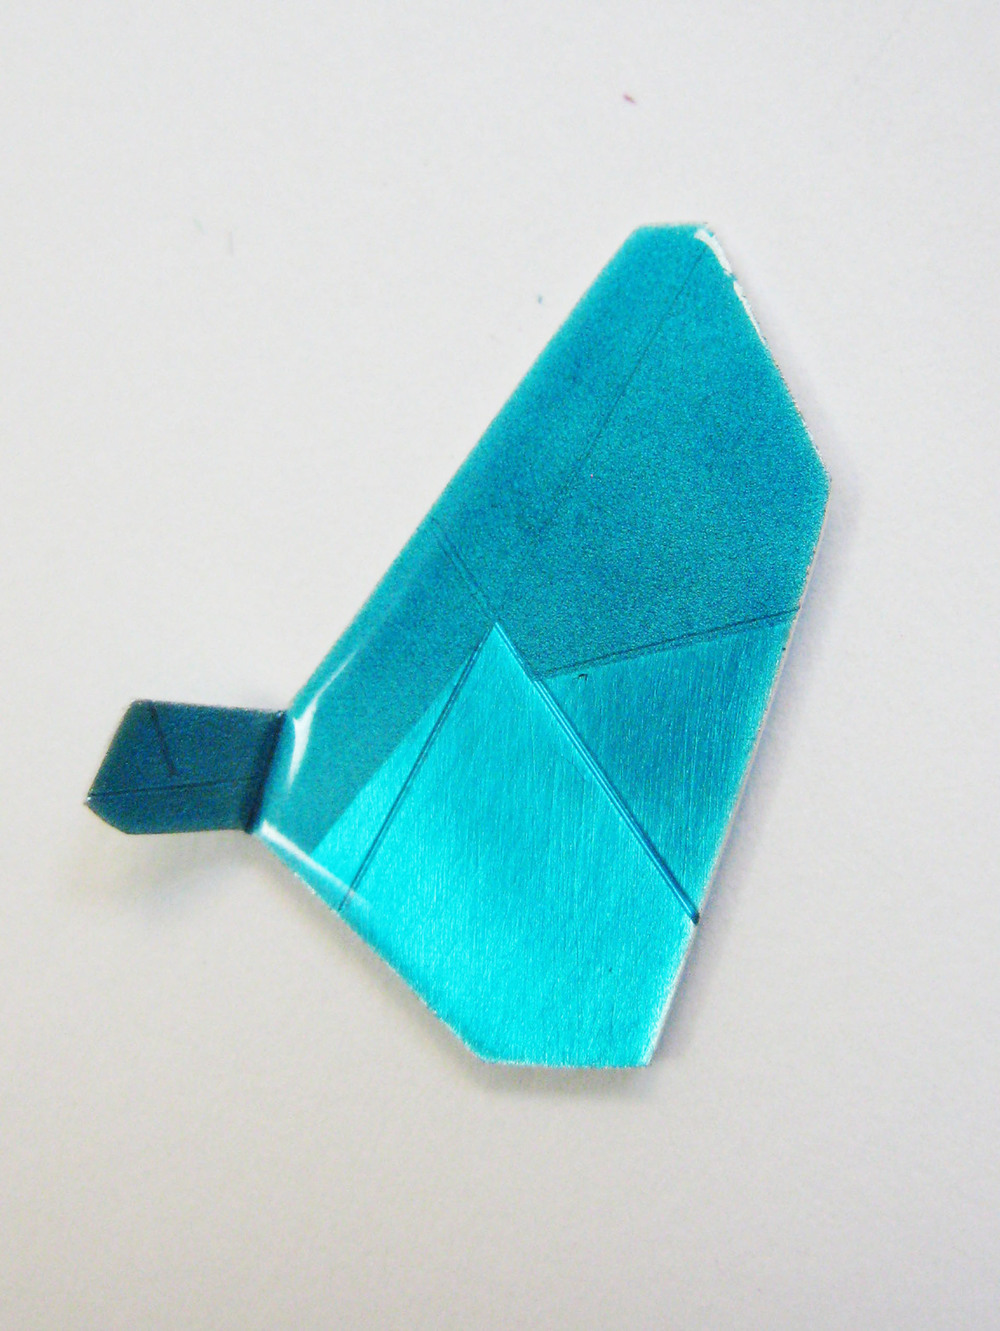 16-Teal Pin Gem-Voegele.jpg